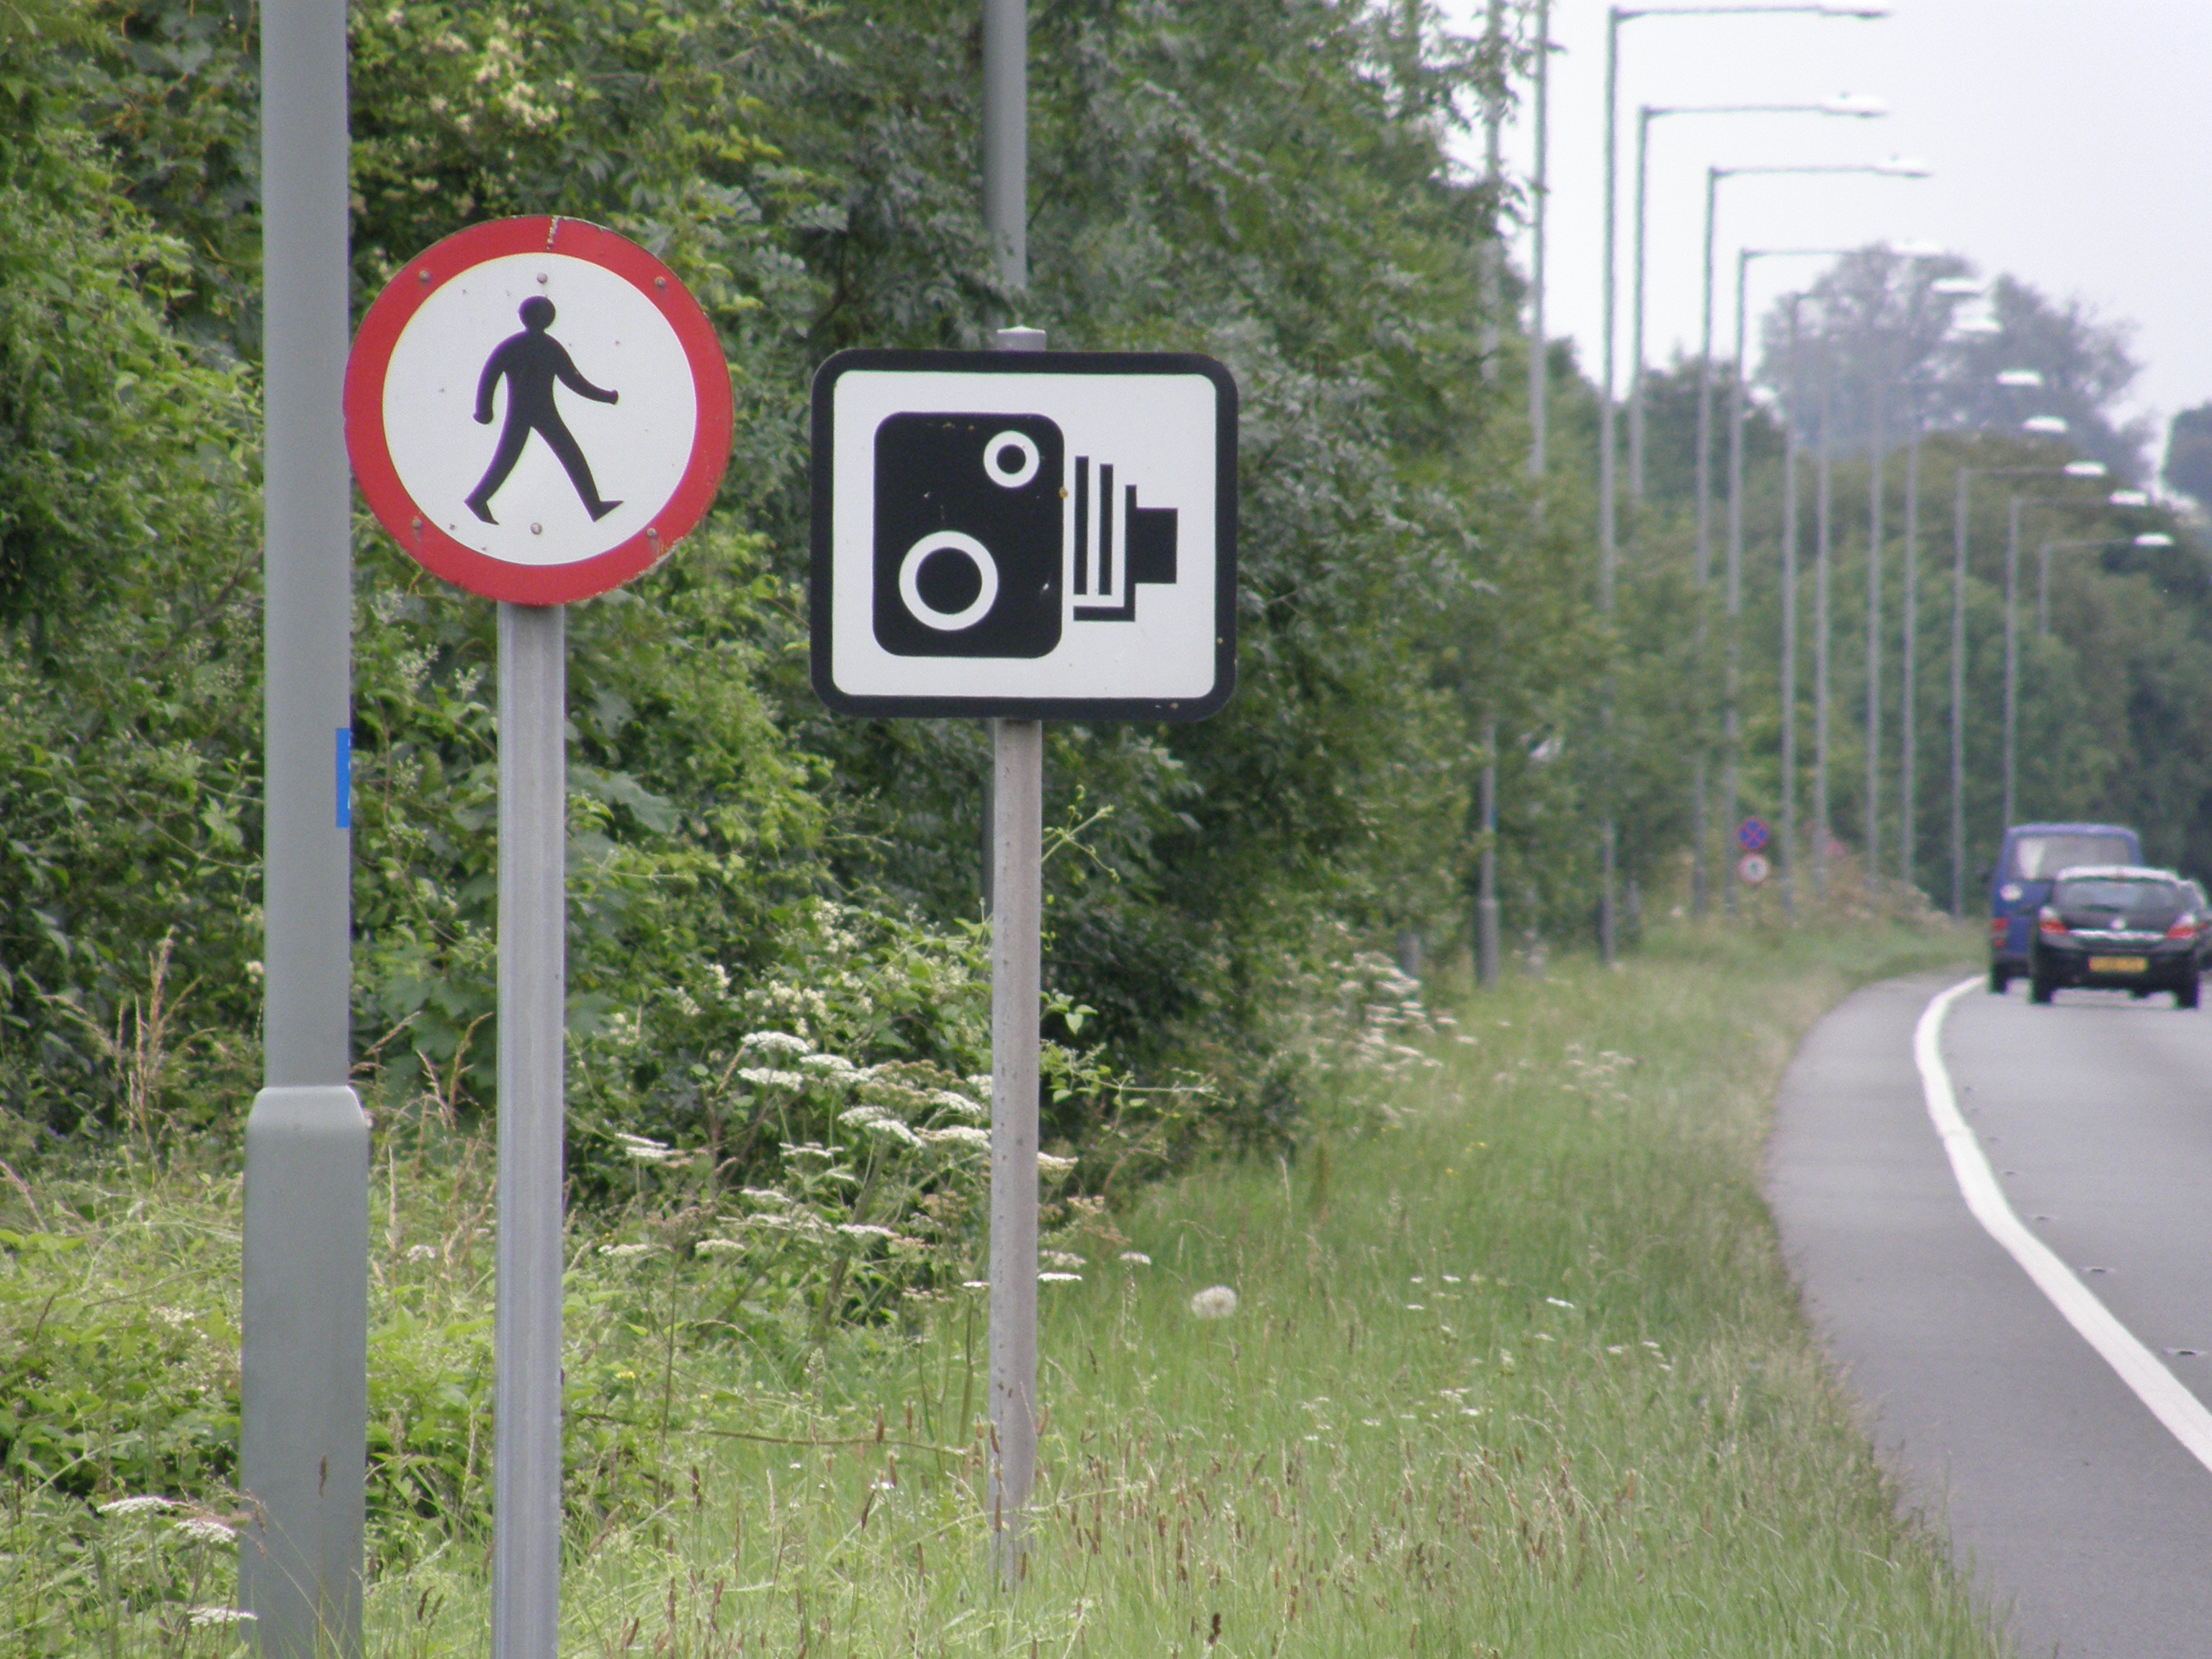 Camera Sign together with Pedestrian Sign